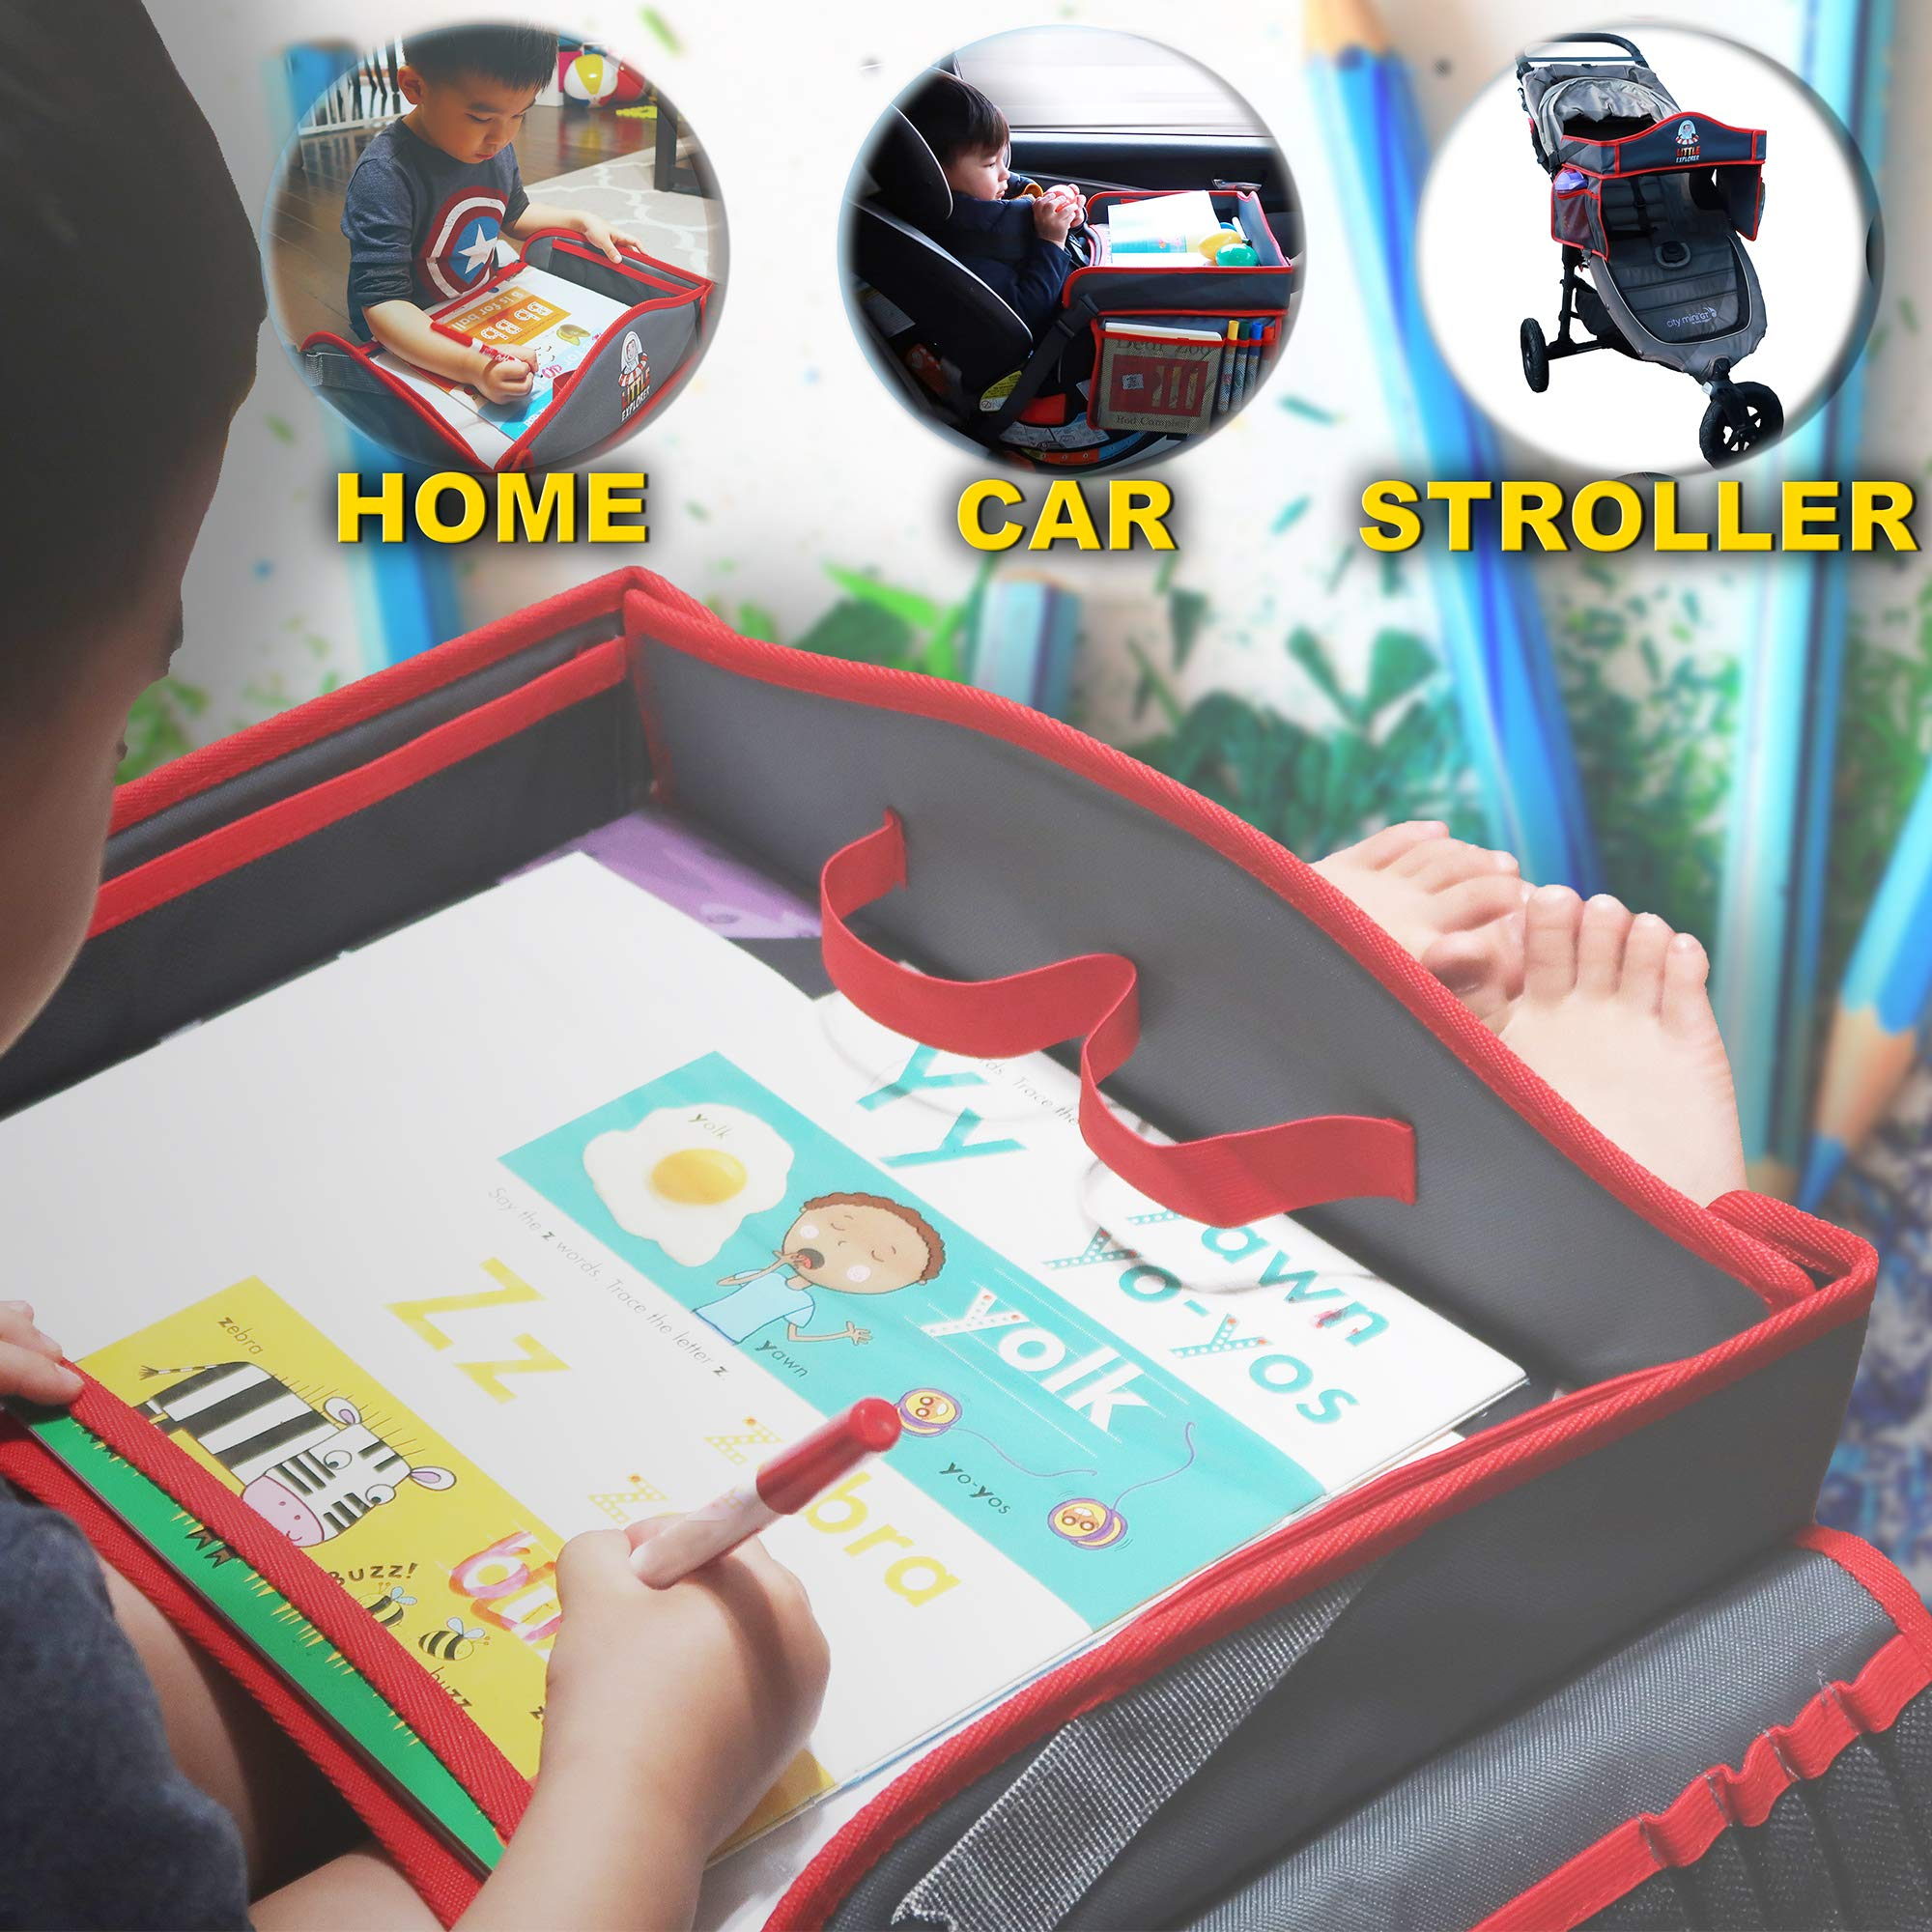 Portable Kids Travel Tray With Waterproof And Erasable Surface By Little Explorer / Unique Space Design Tray With Side Pockets And Wet Wipe For Any Car Seat, Strollers And High Chair